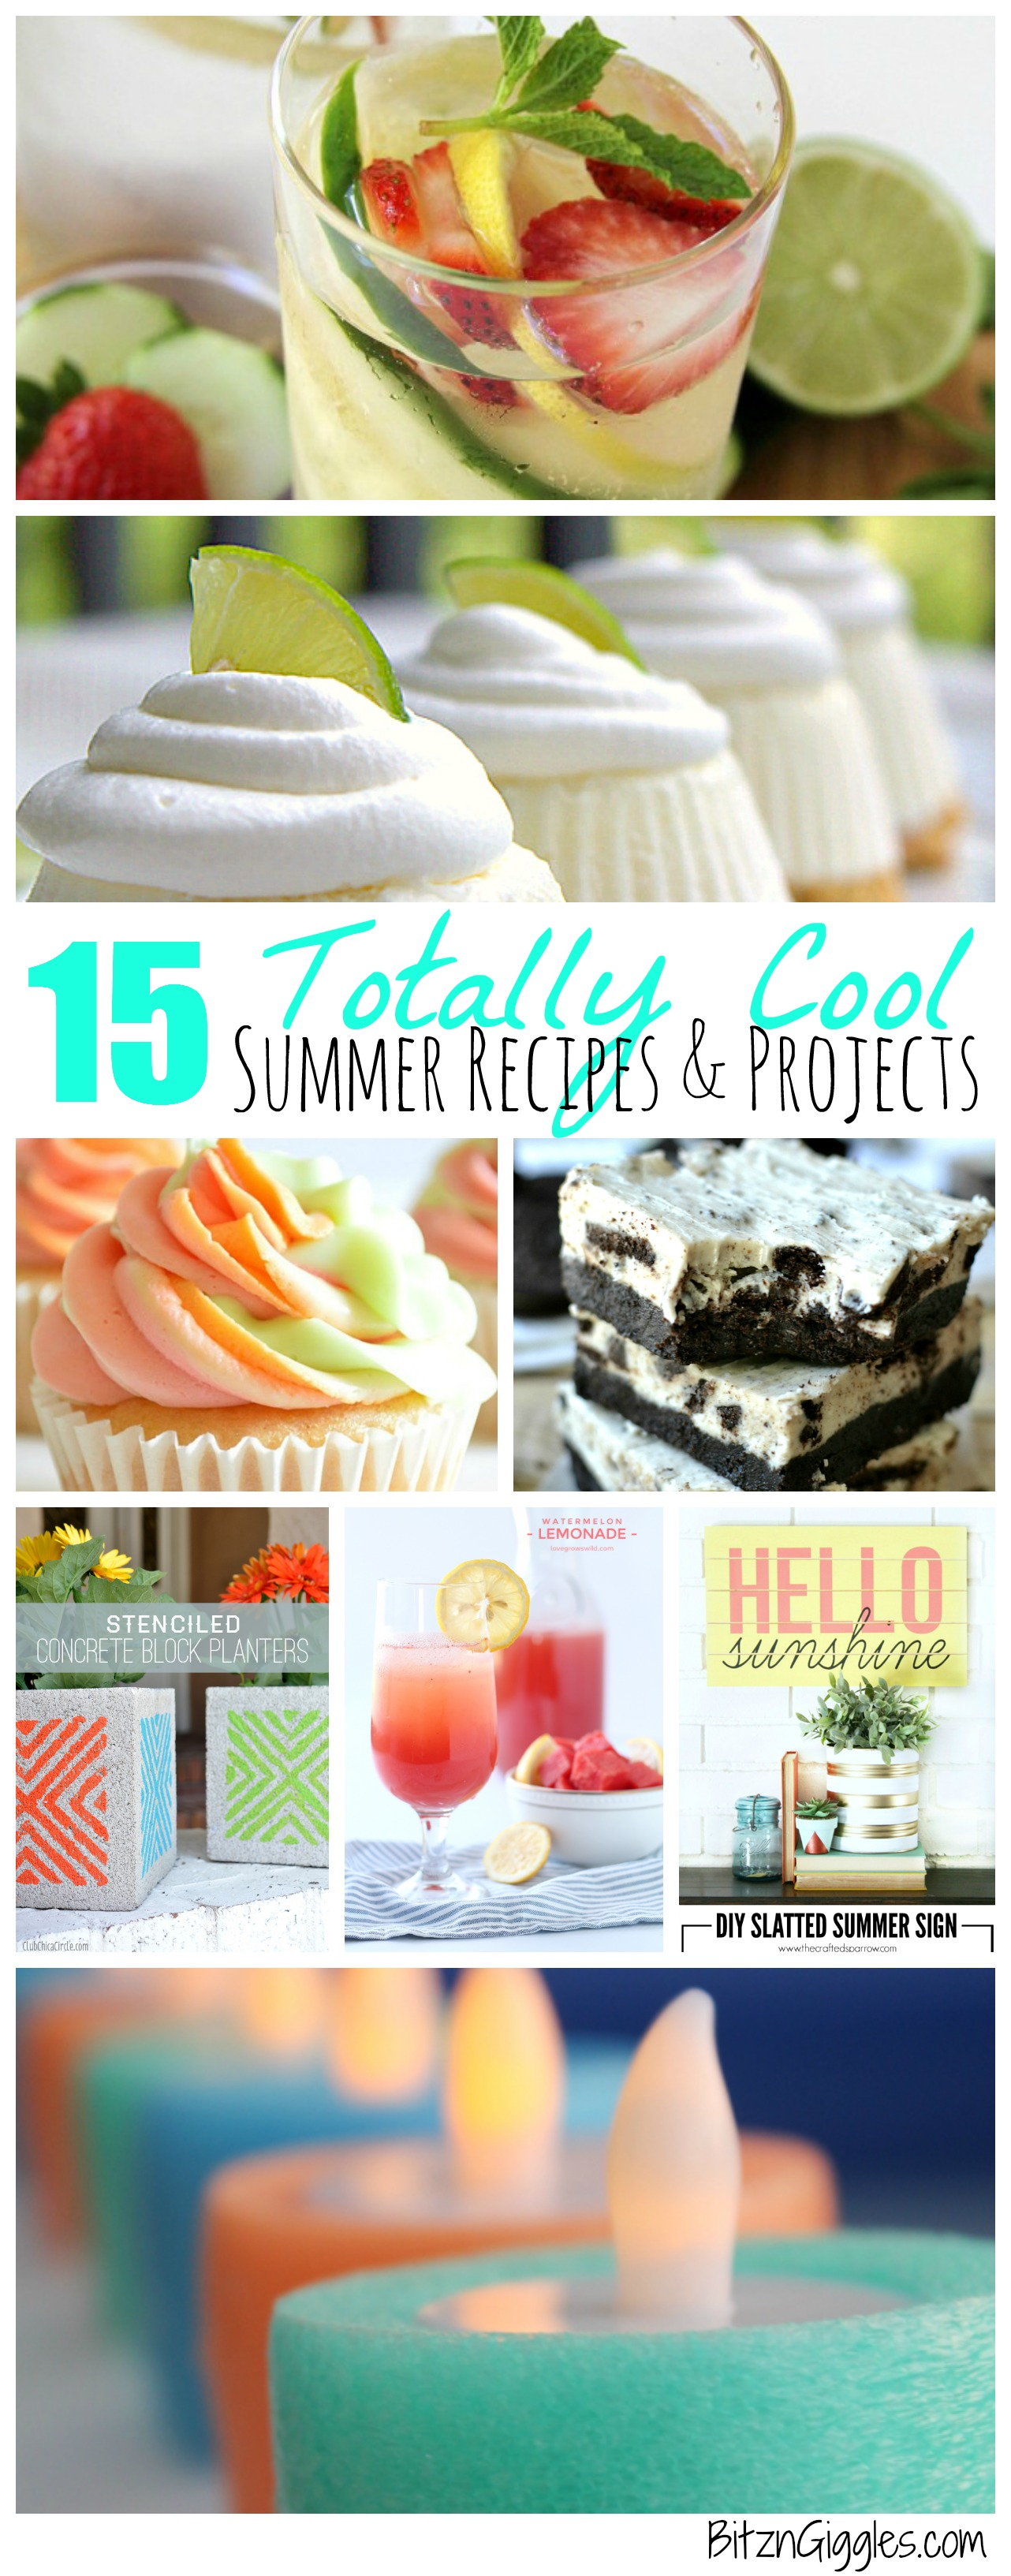 15 Summer Gel Nails: 15 Totally Cool Summer Recipes & Projects